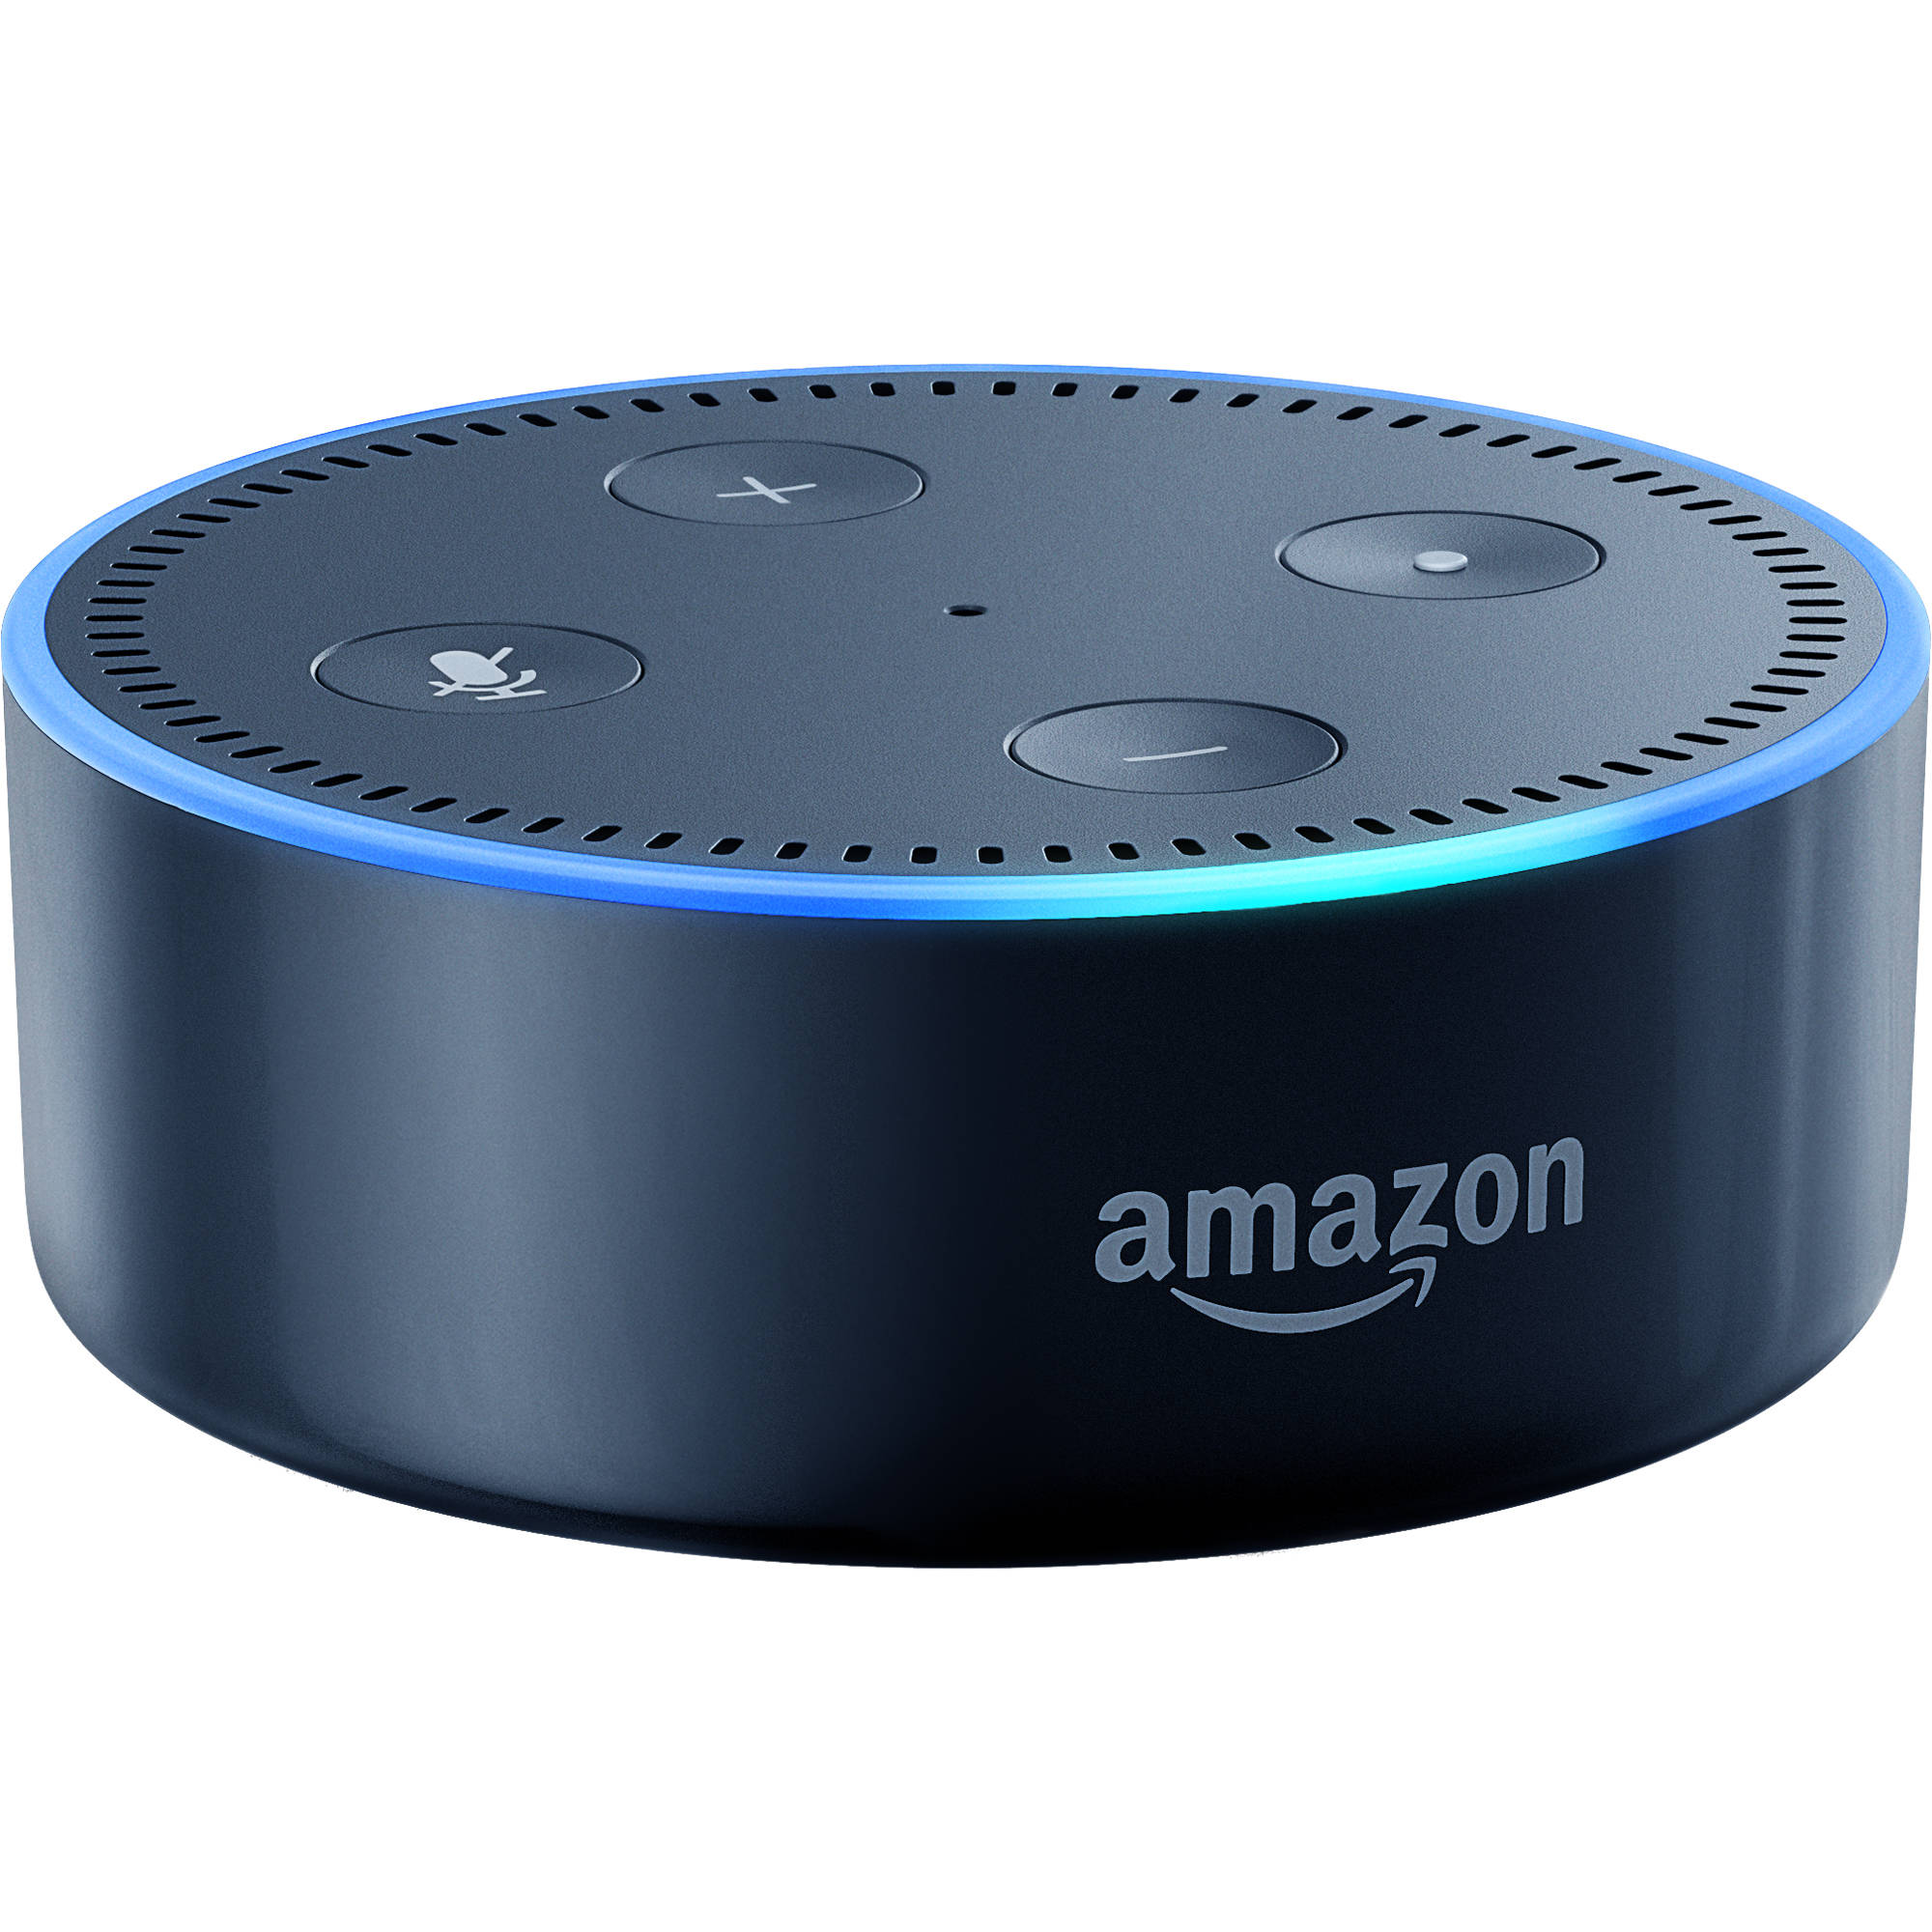 Image result for Amazon Echo Dot